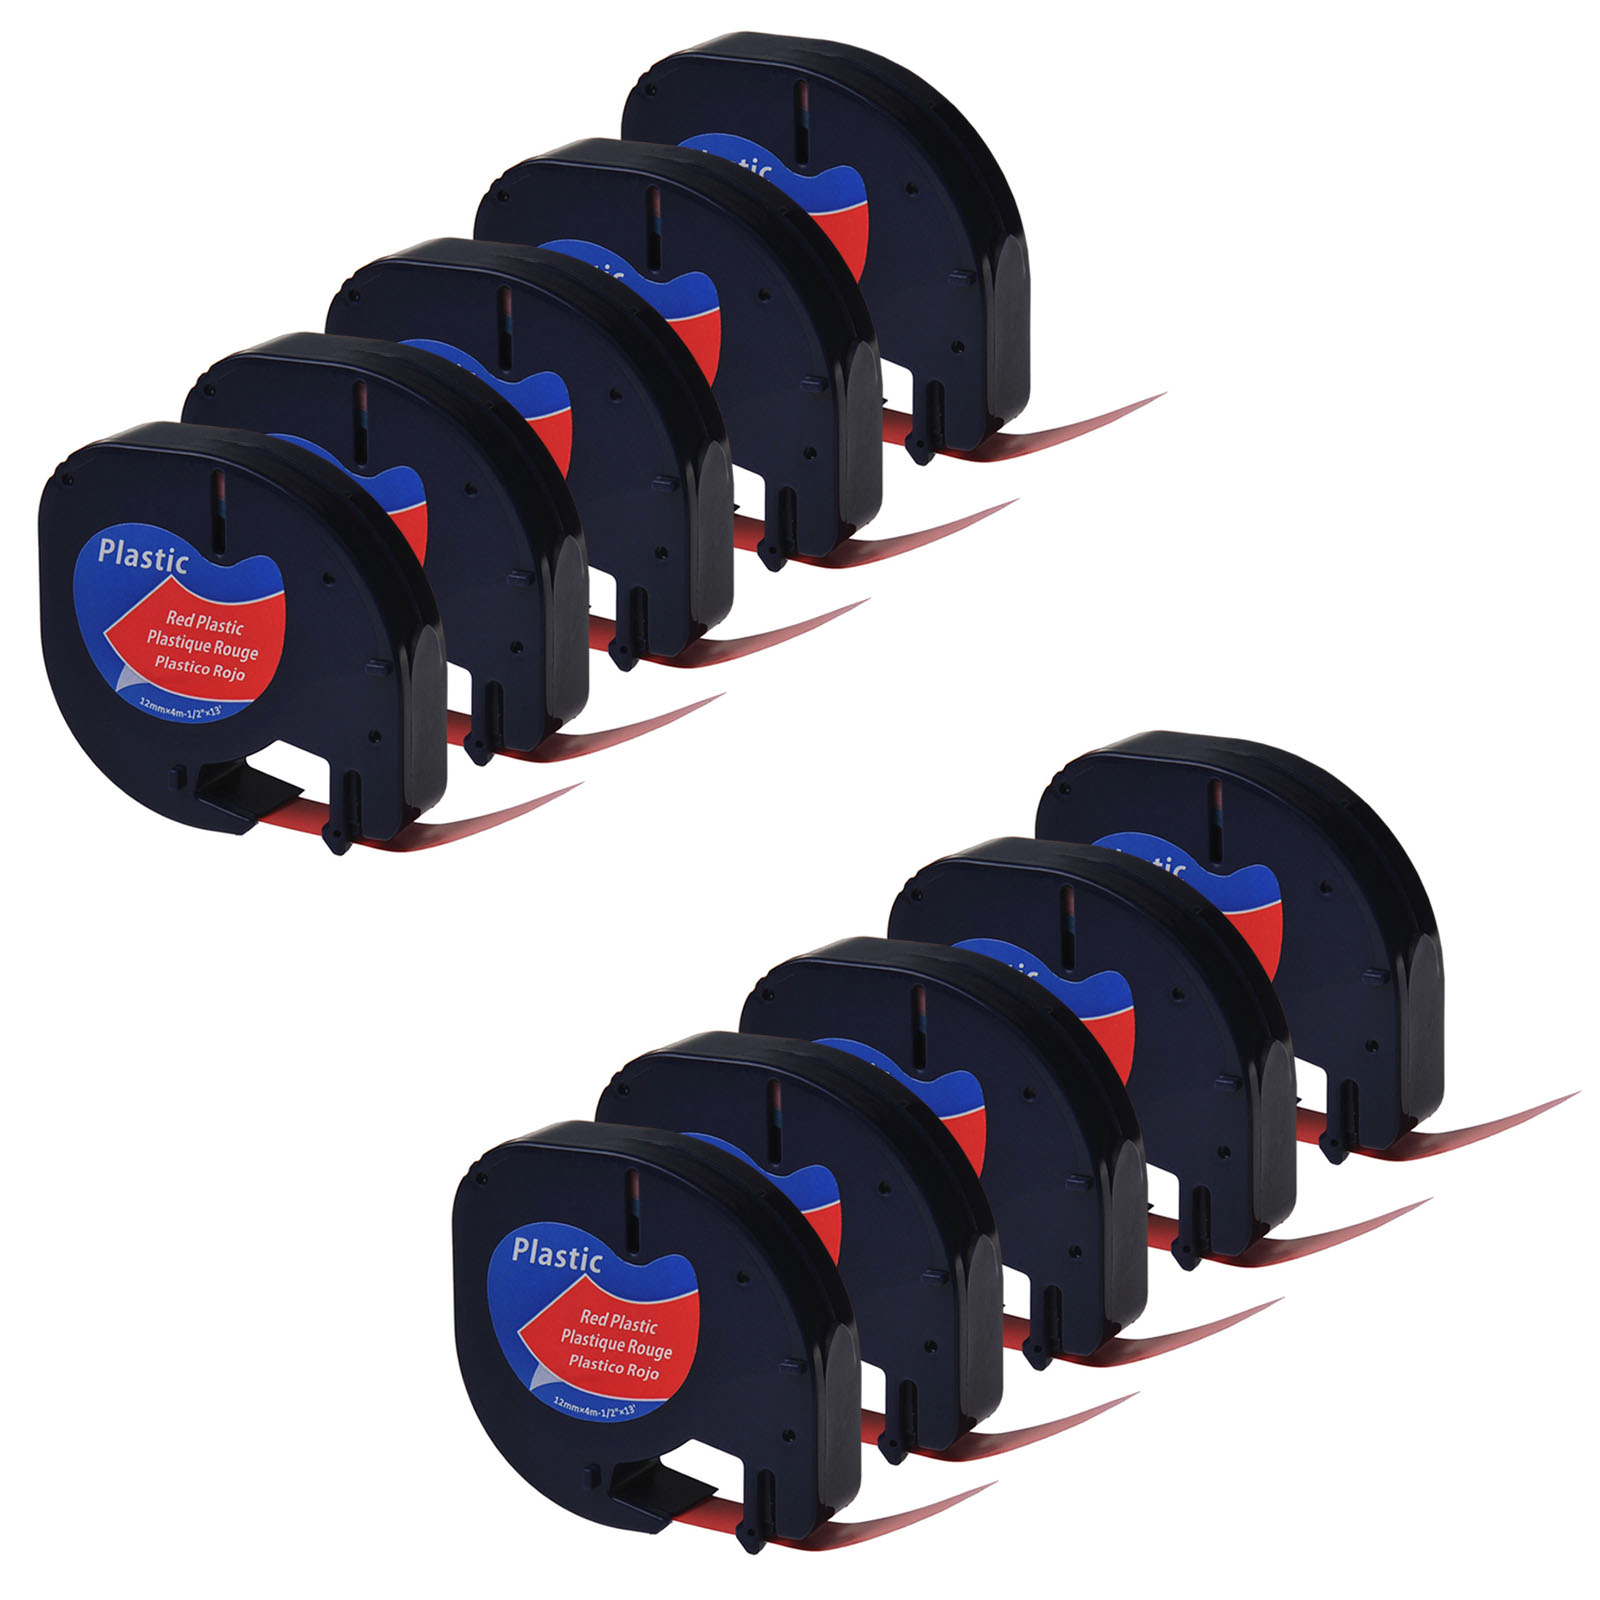 6PK Plastic Label Tape fit for DYMO Letra Tag QX50 LT 91333 12mm Black on Red